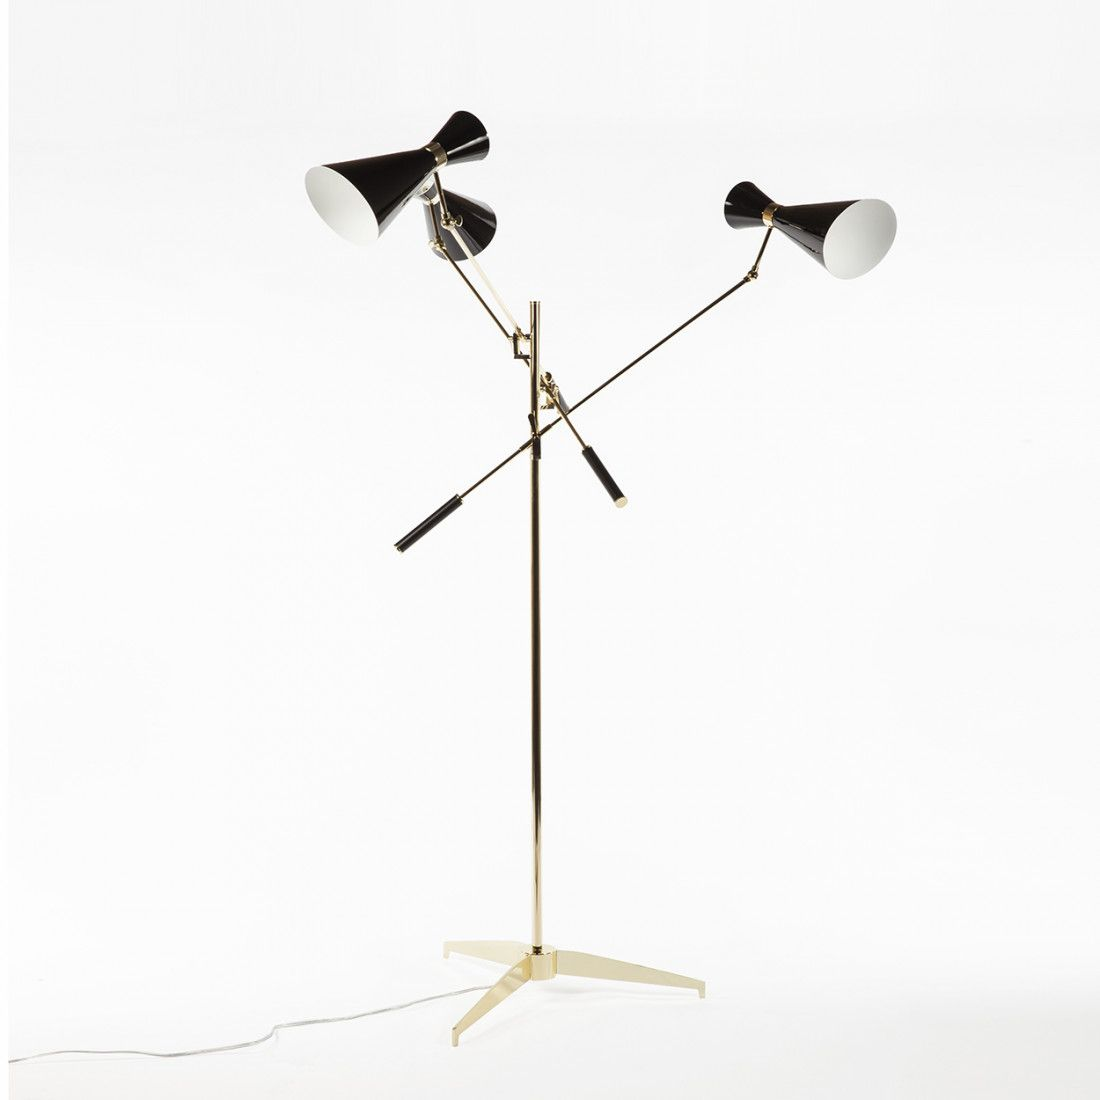 Modern Reproduction Triennale Floor Lamp Three Arms And Double Cone Shades Gold Inspired By Gino Sarfatti Lamp Floor Lamp Tree Floor Lamp